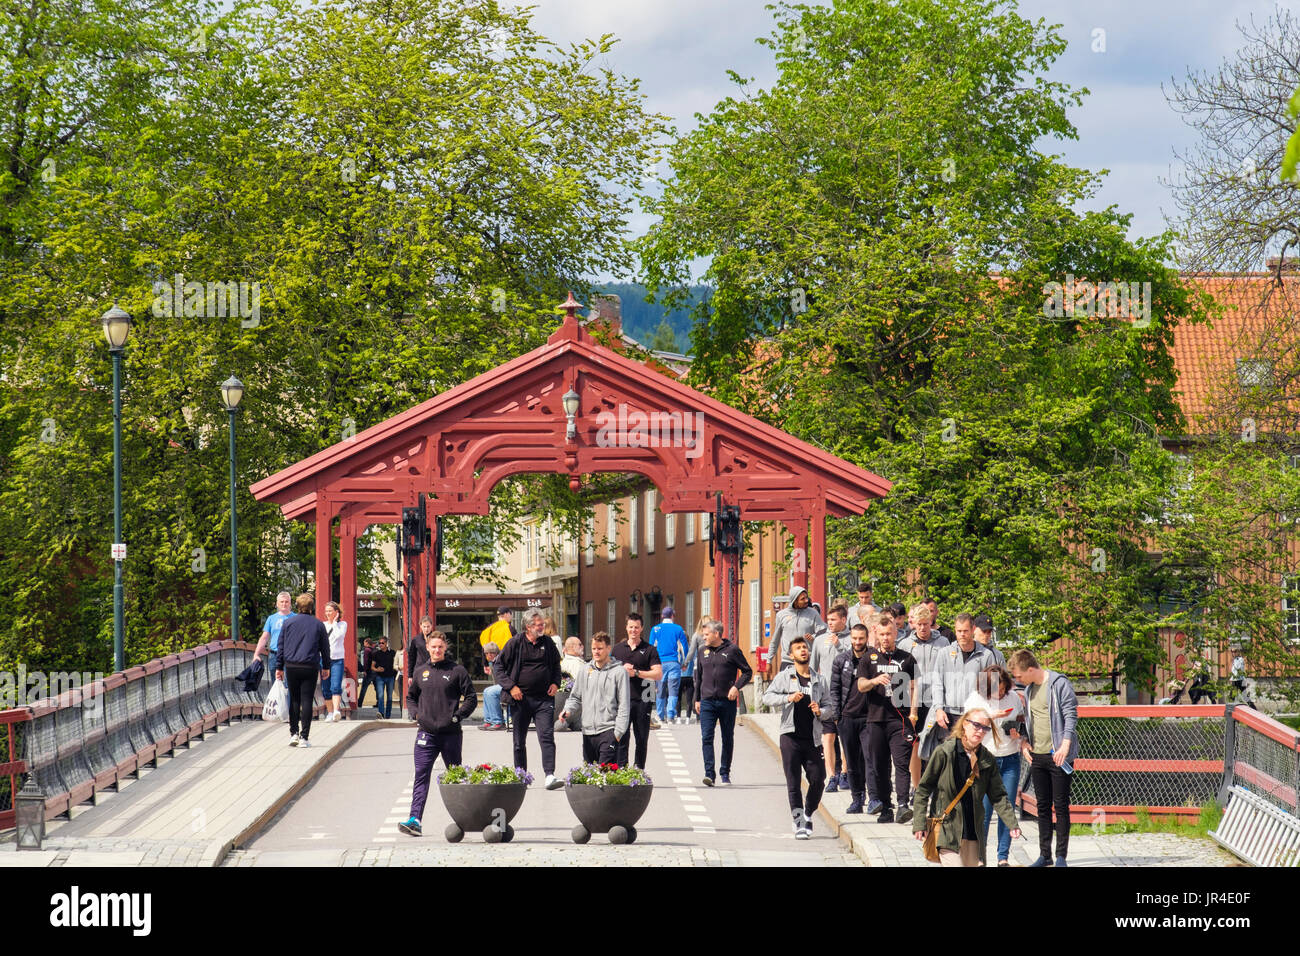 People crossing the Old Town Bridge (Gamle Bybro) with a Lykkens portal (1861). Trondheim, Sør-Trøndelag, Norway, Stock Photo